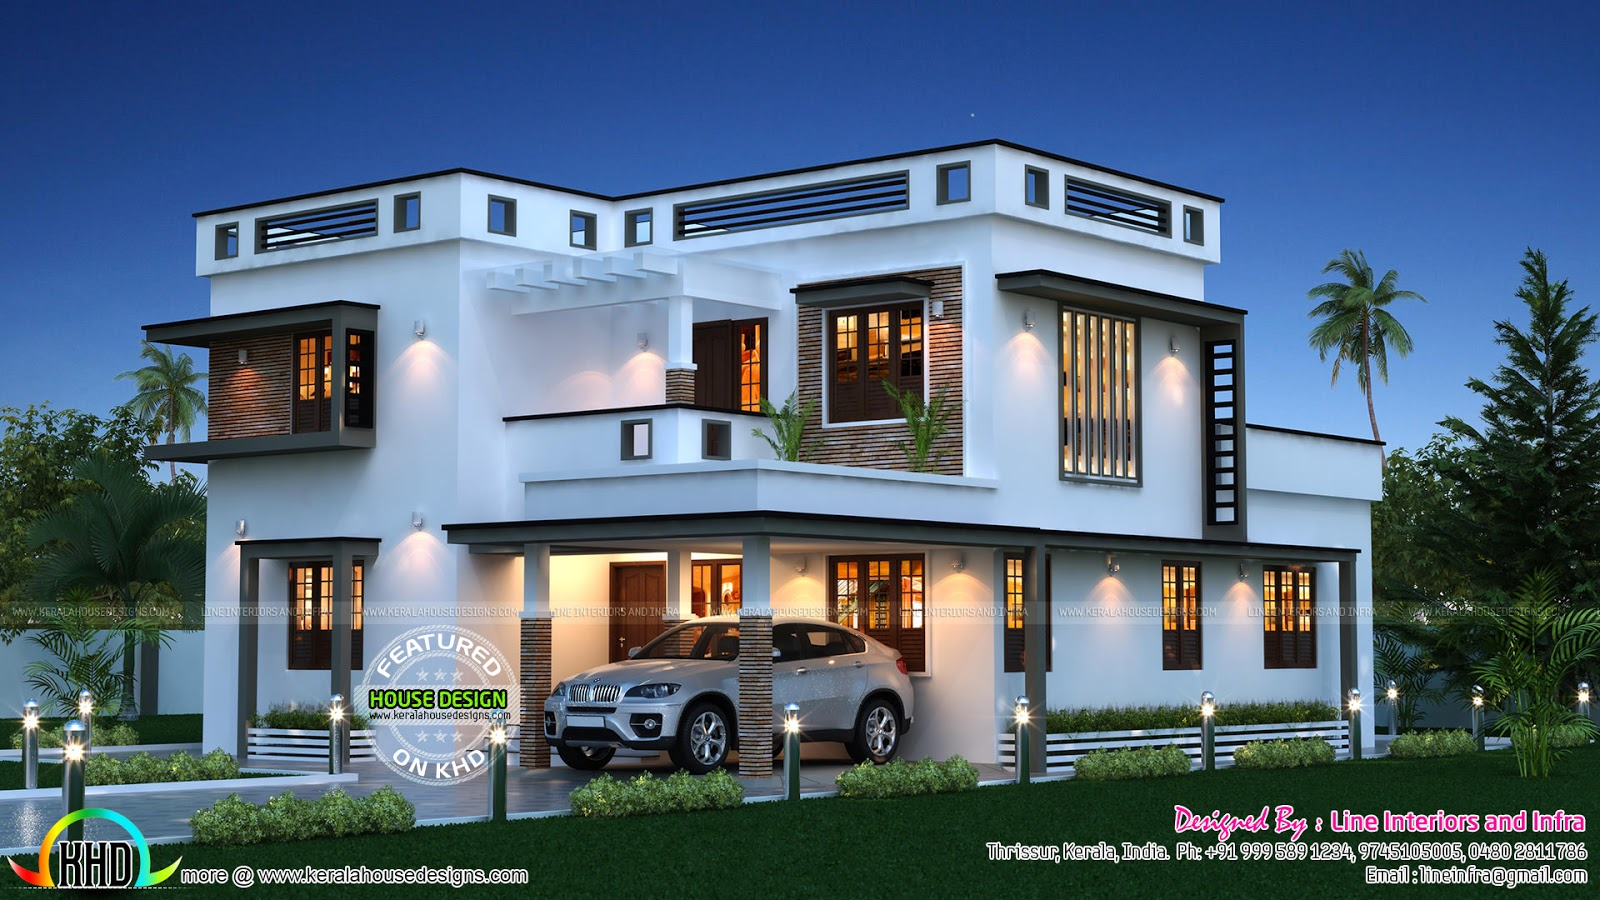 Beautiful 1600 sq ft home kerala home design and floor plans for Free small house plans indian style